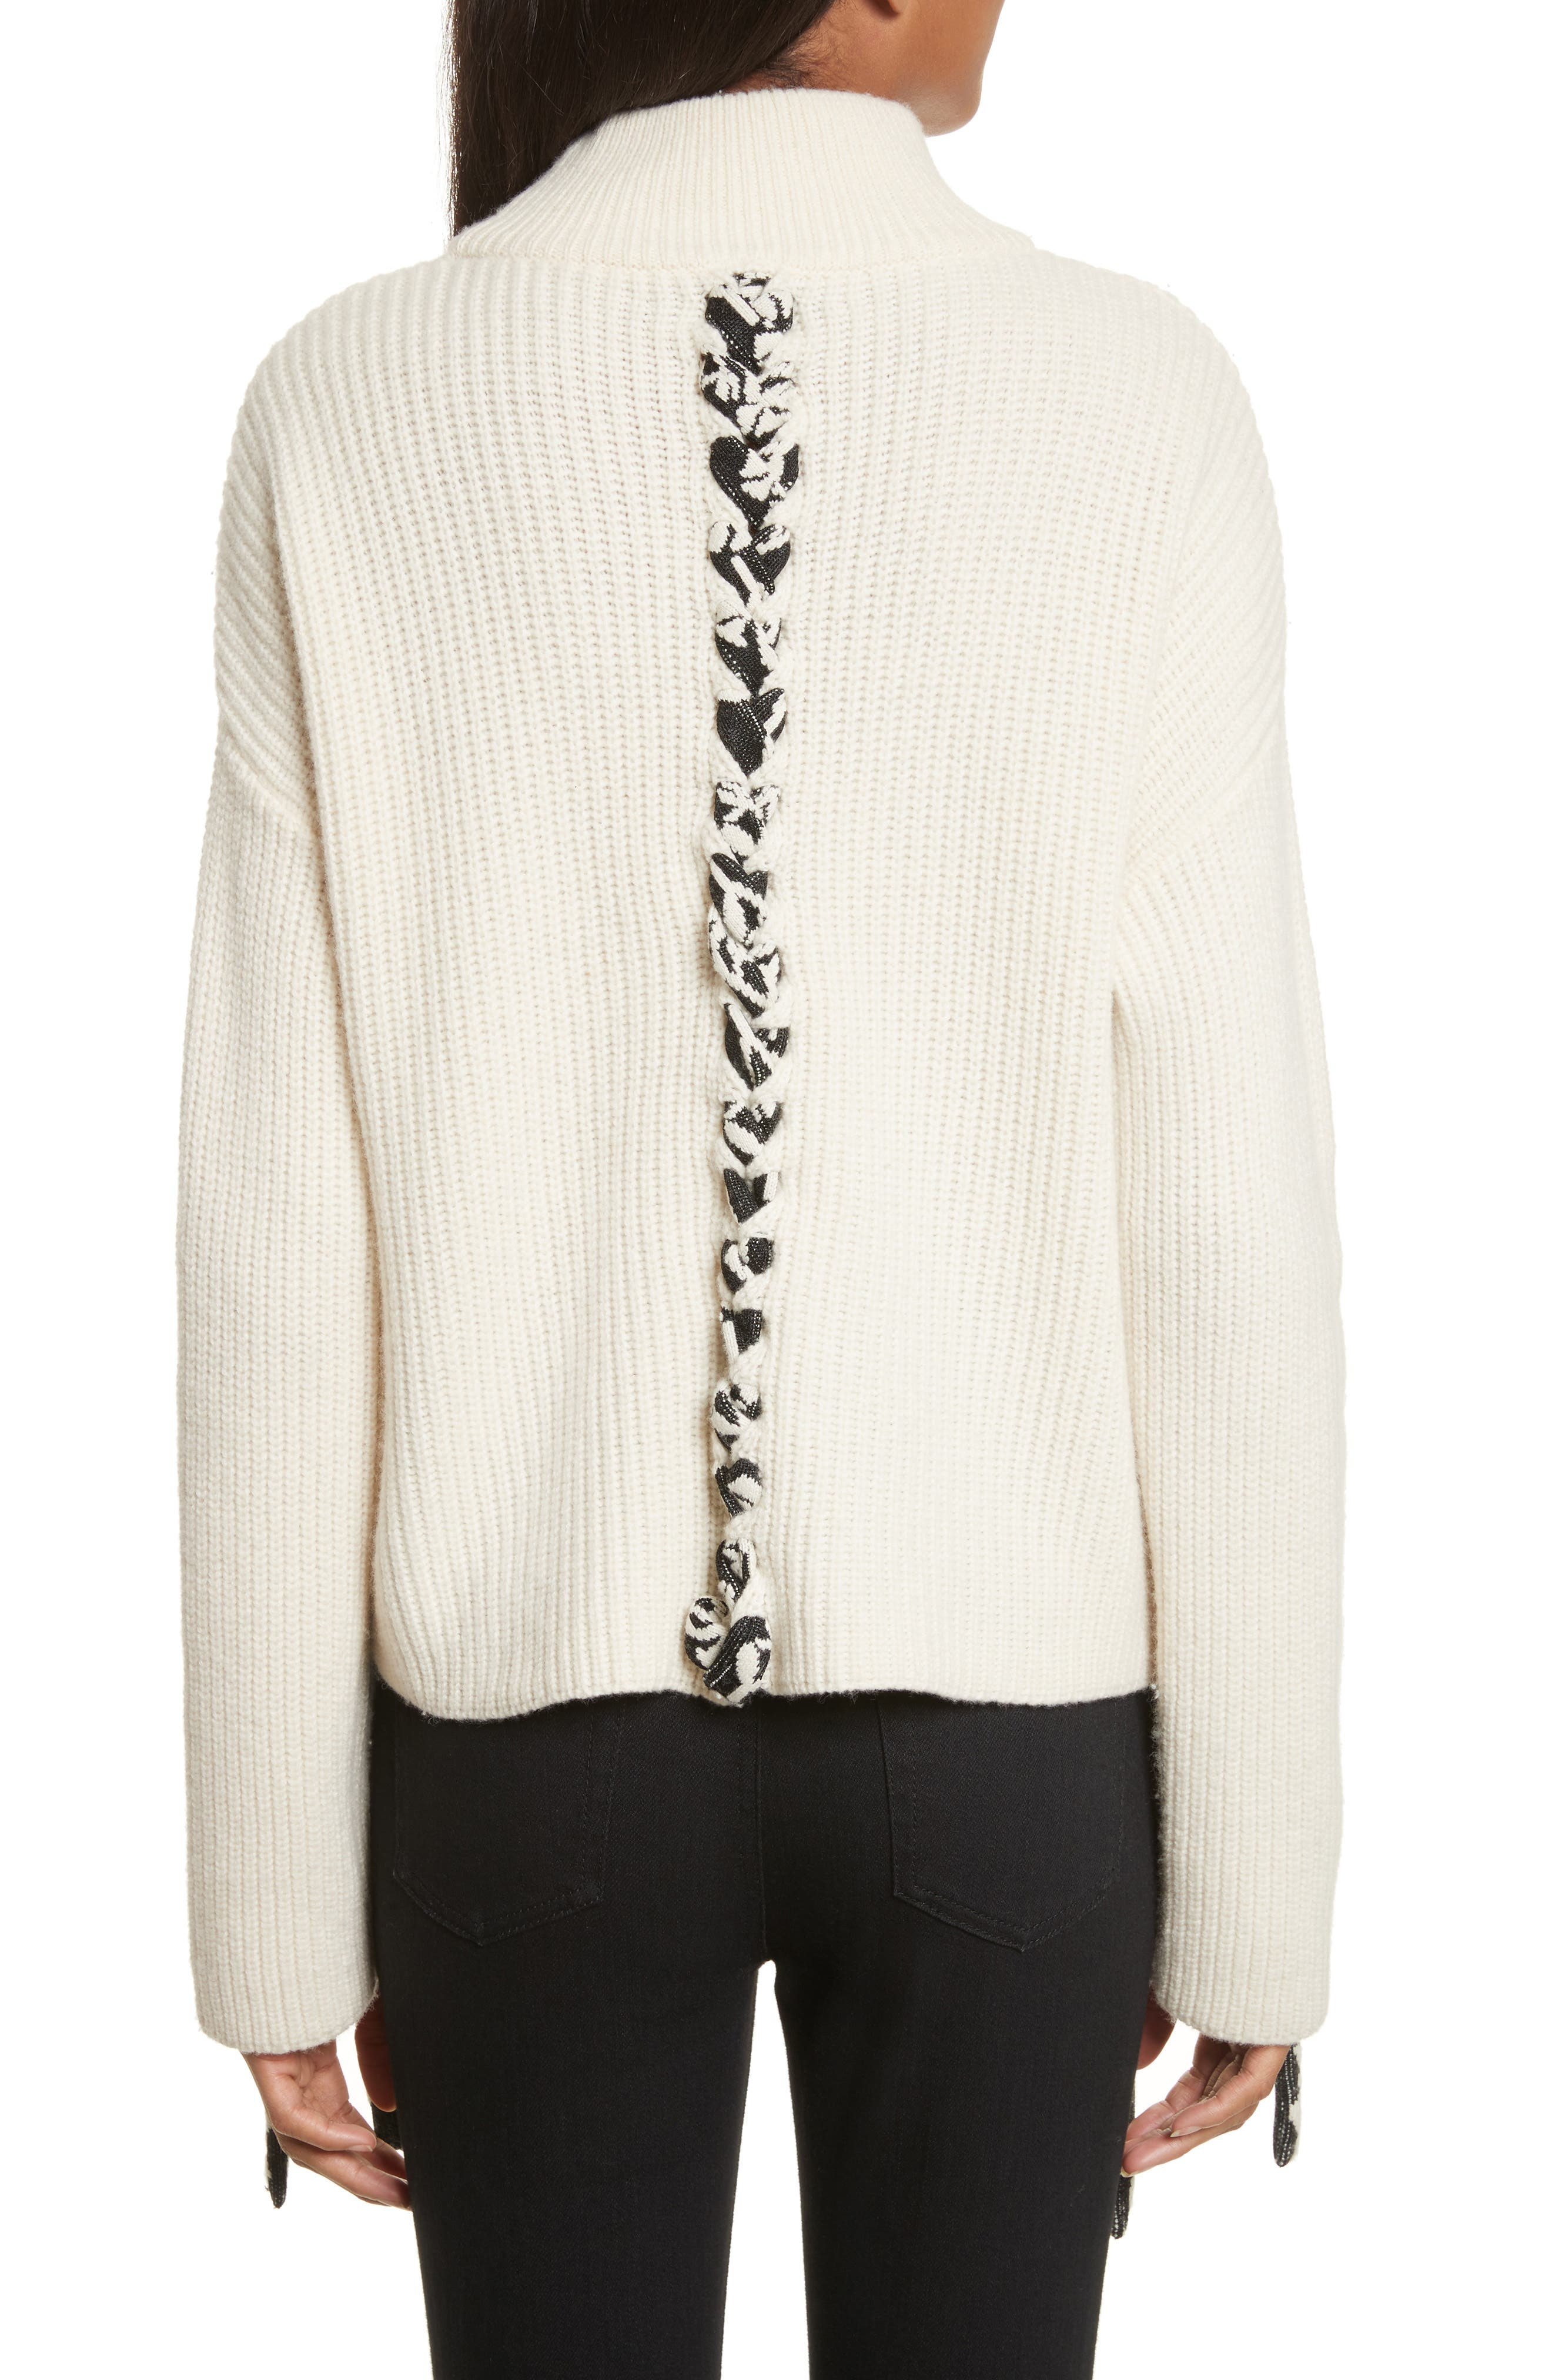 Mughal Lace-Up Sweater,                             Alternate thumbnail 2, color,                             Off White W/ Jacquard Ties